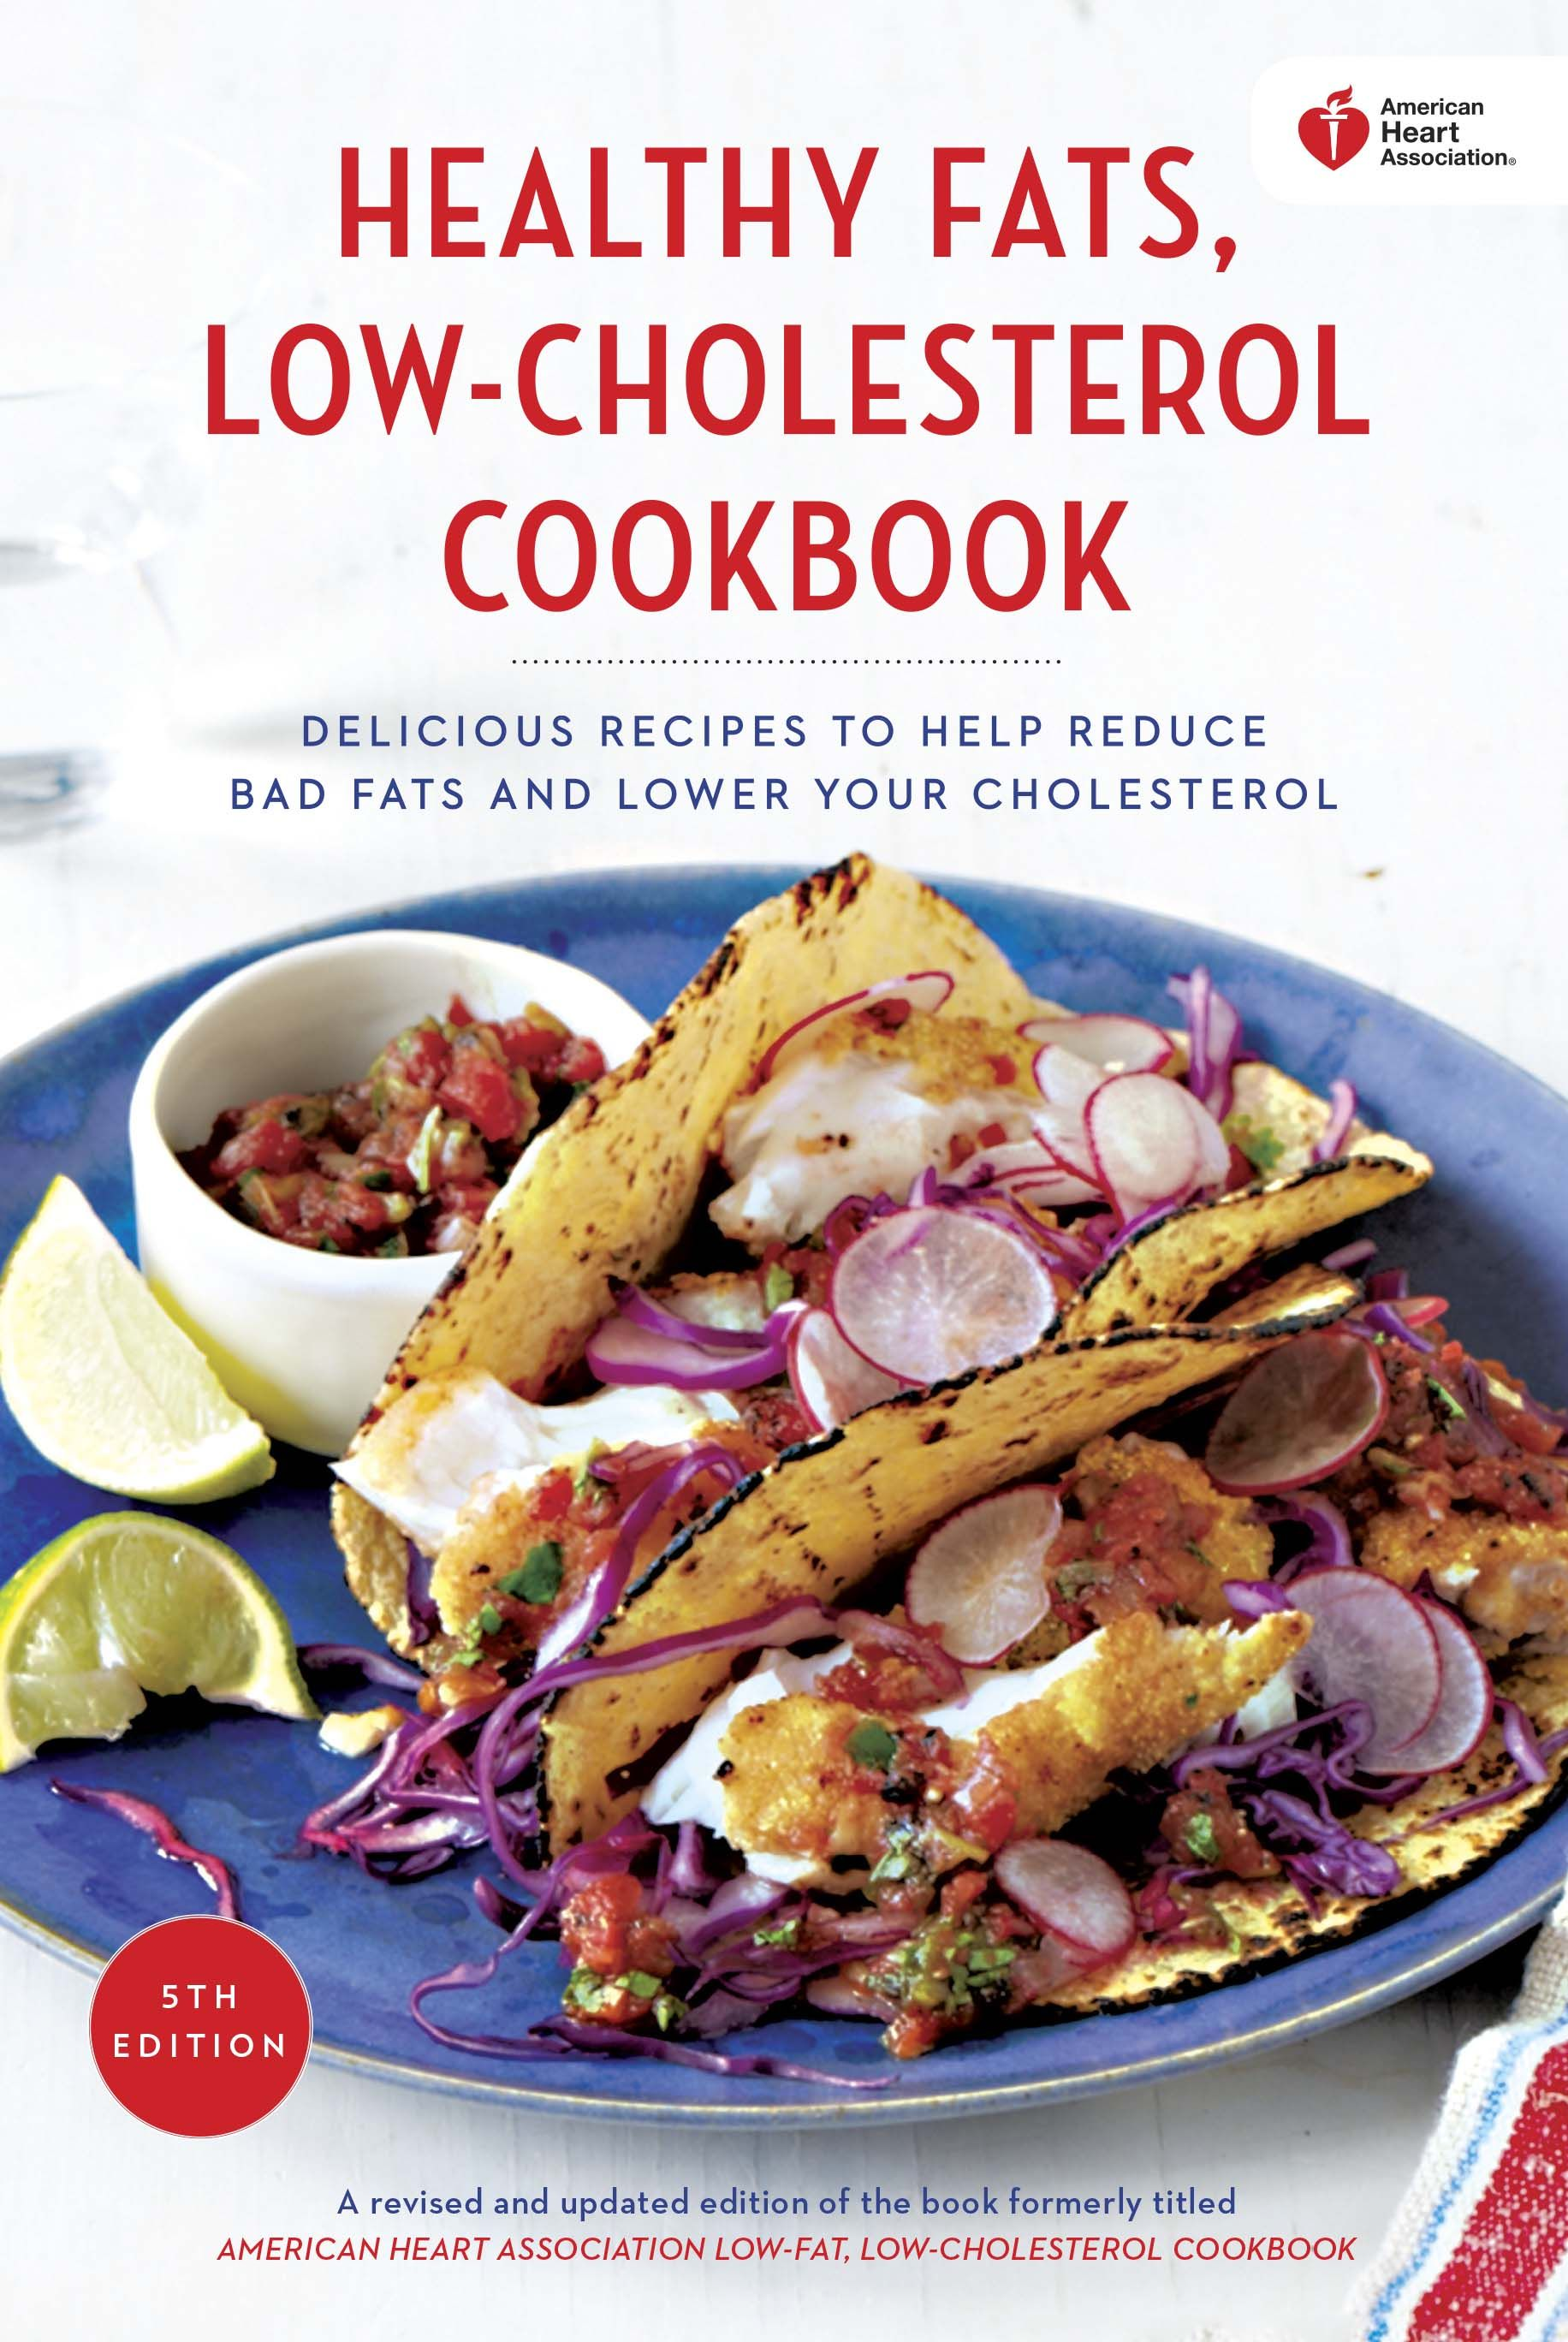 With over 200 hearthealthy recipes, our updated cookbook